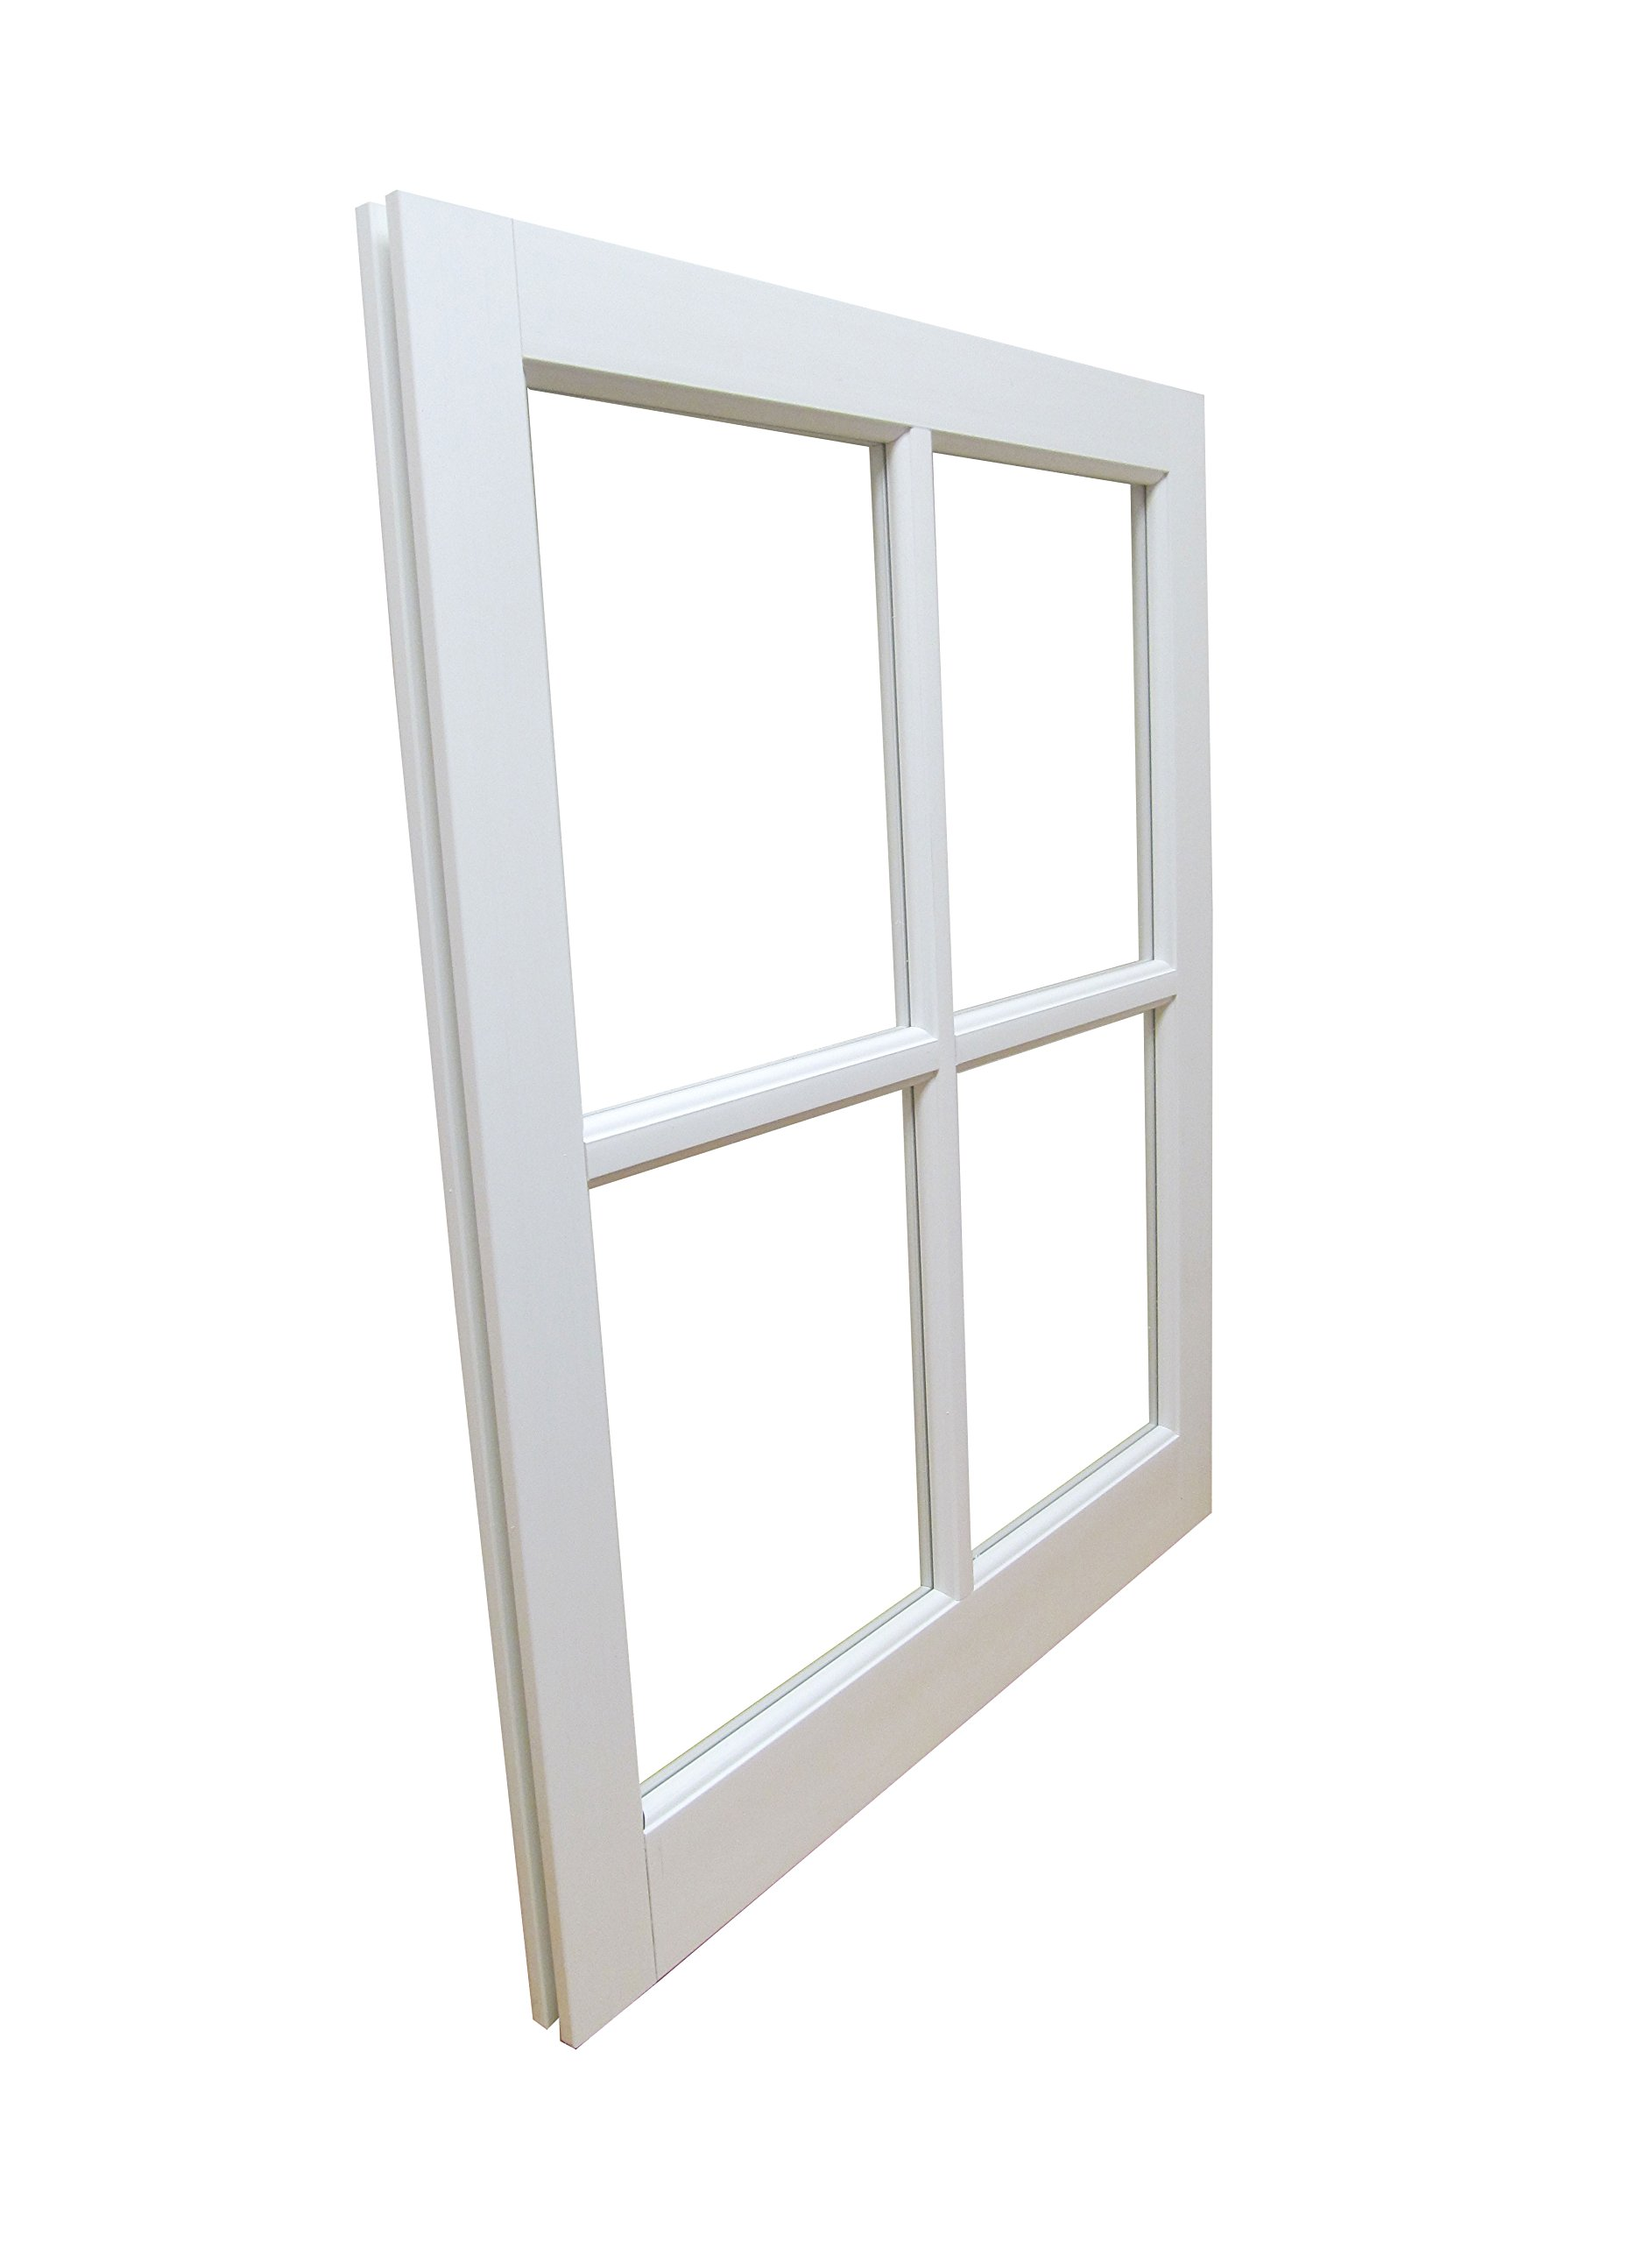 Barn Sash Window PVC 24'' x 29'' Traditional Style 4 lite by Shed Windows and More